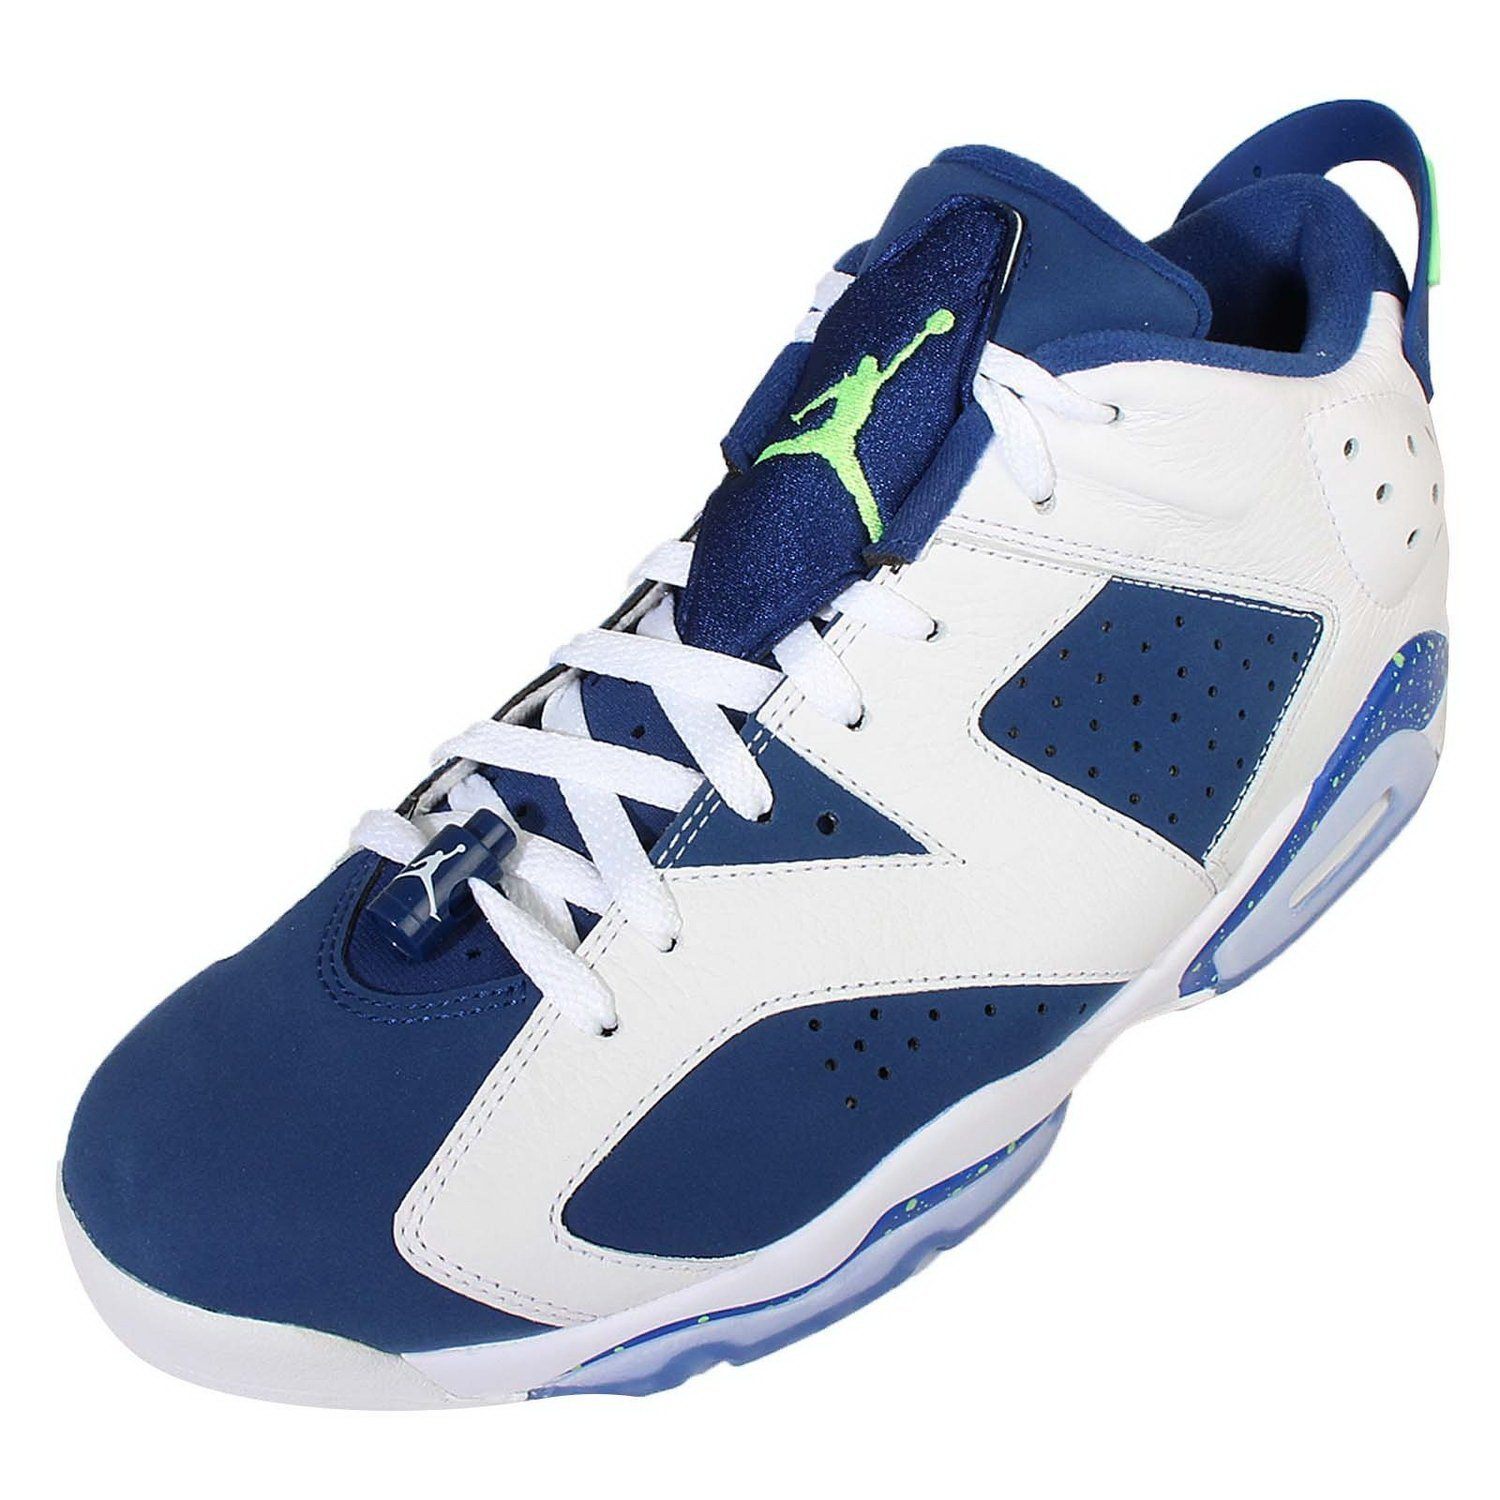 big sale db9eb 63a50 Get Quotations · AIR JORDAN 6 RETRO LOW Mens sneakers 304401-106